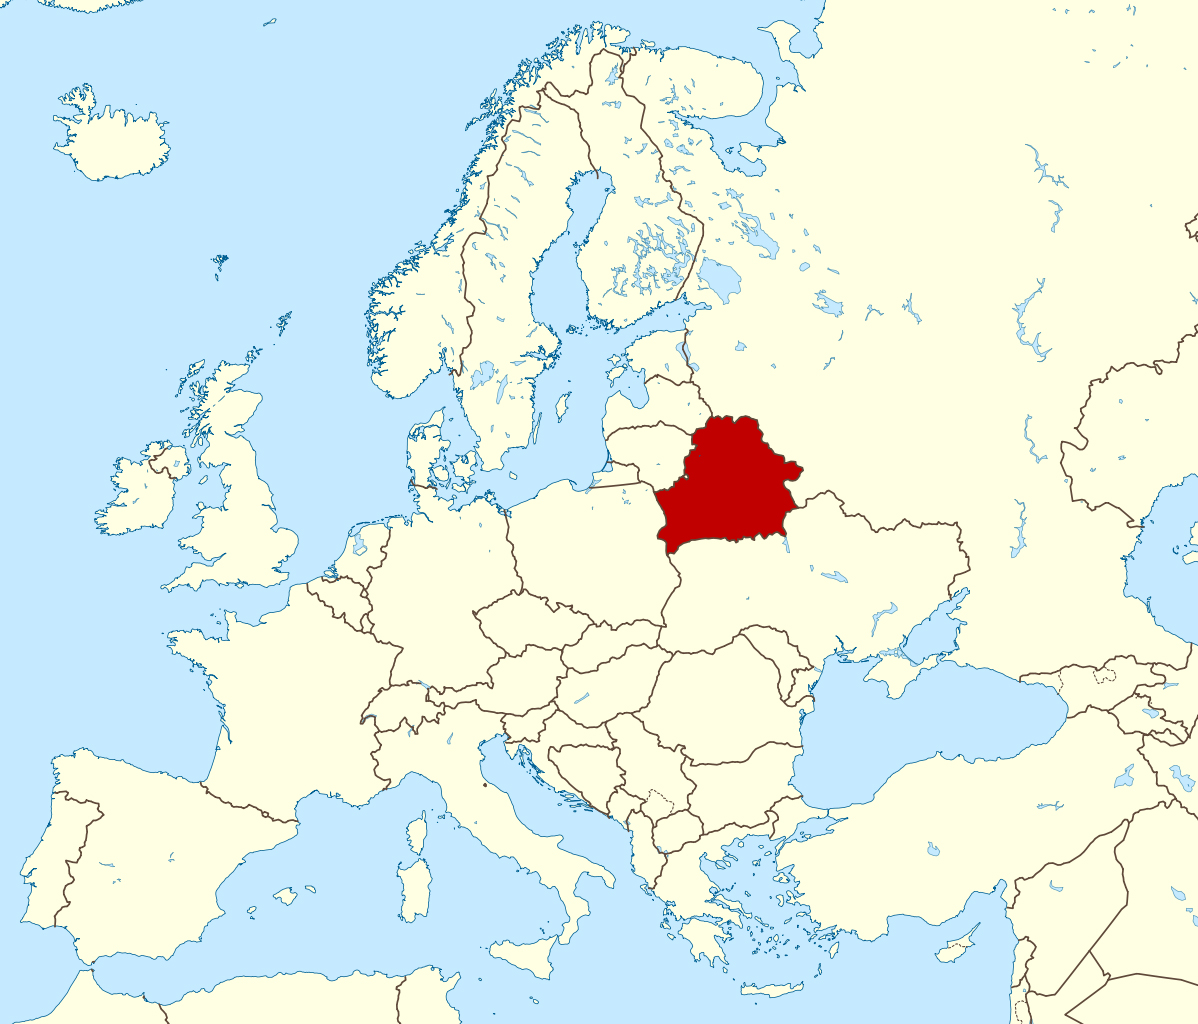 Where is Belarus located? 5